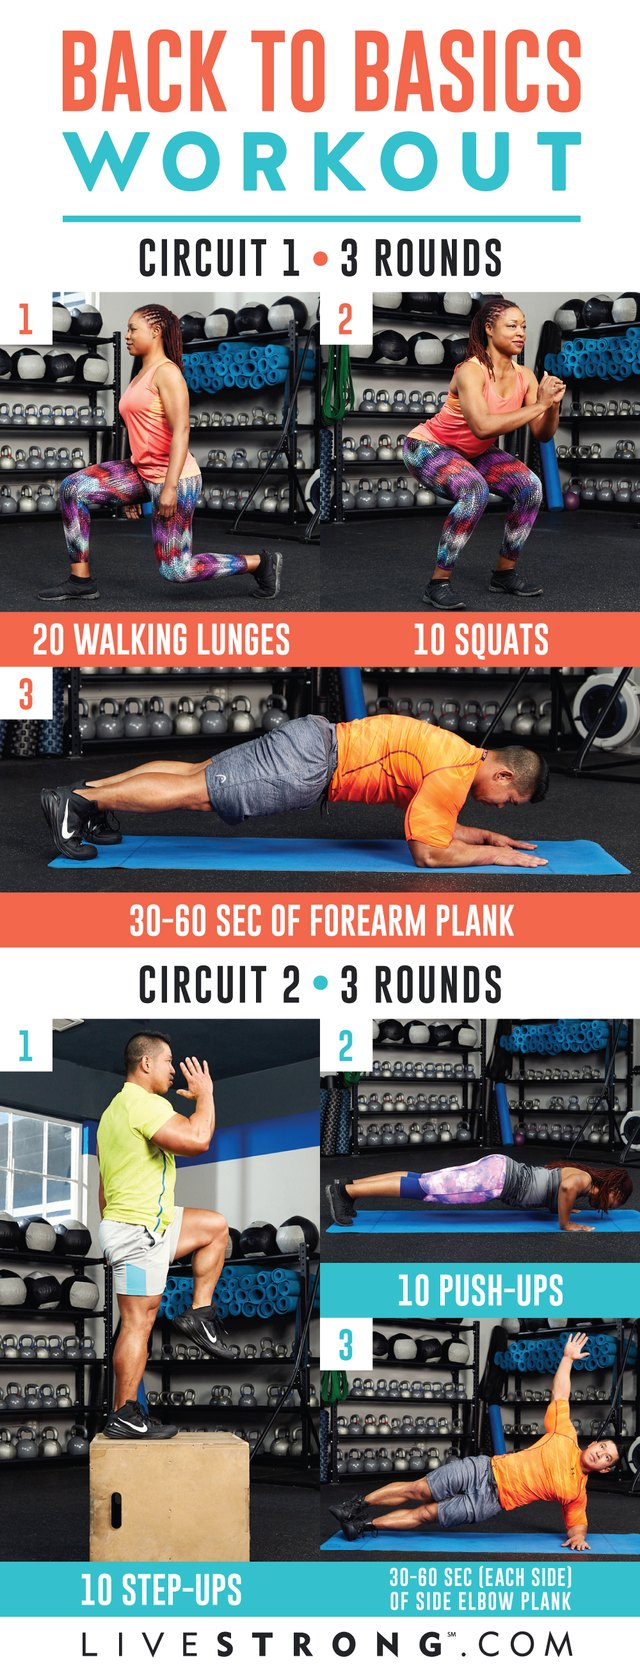 Two circuits. Three rounds. One awesome workout.